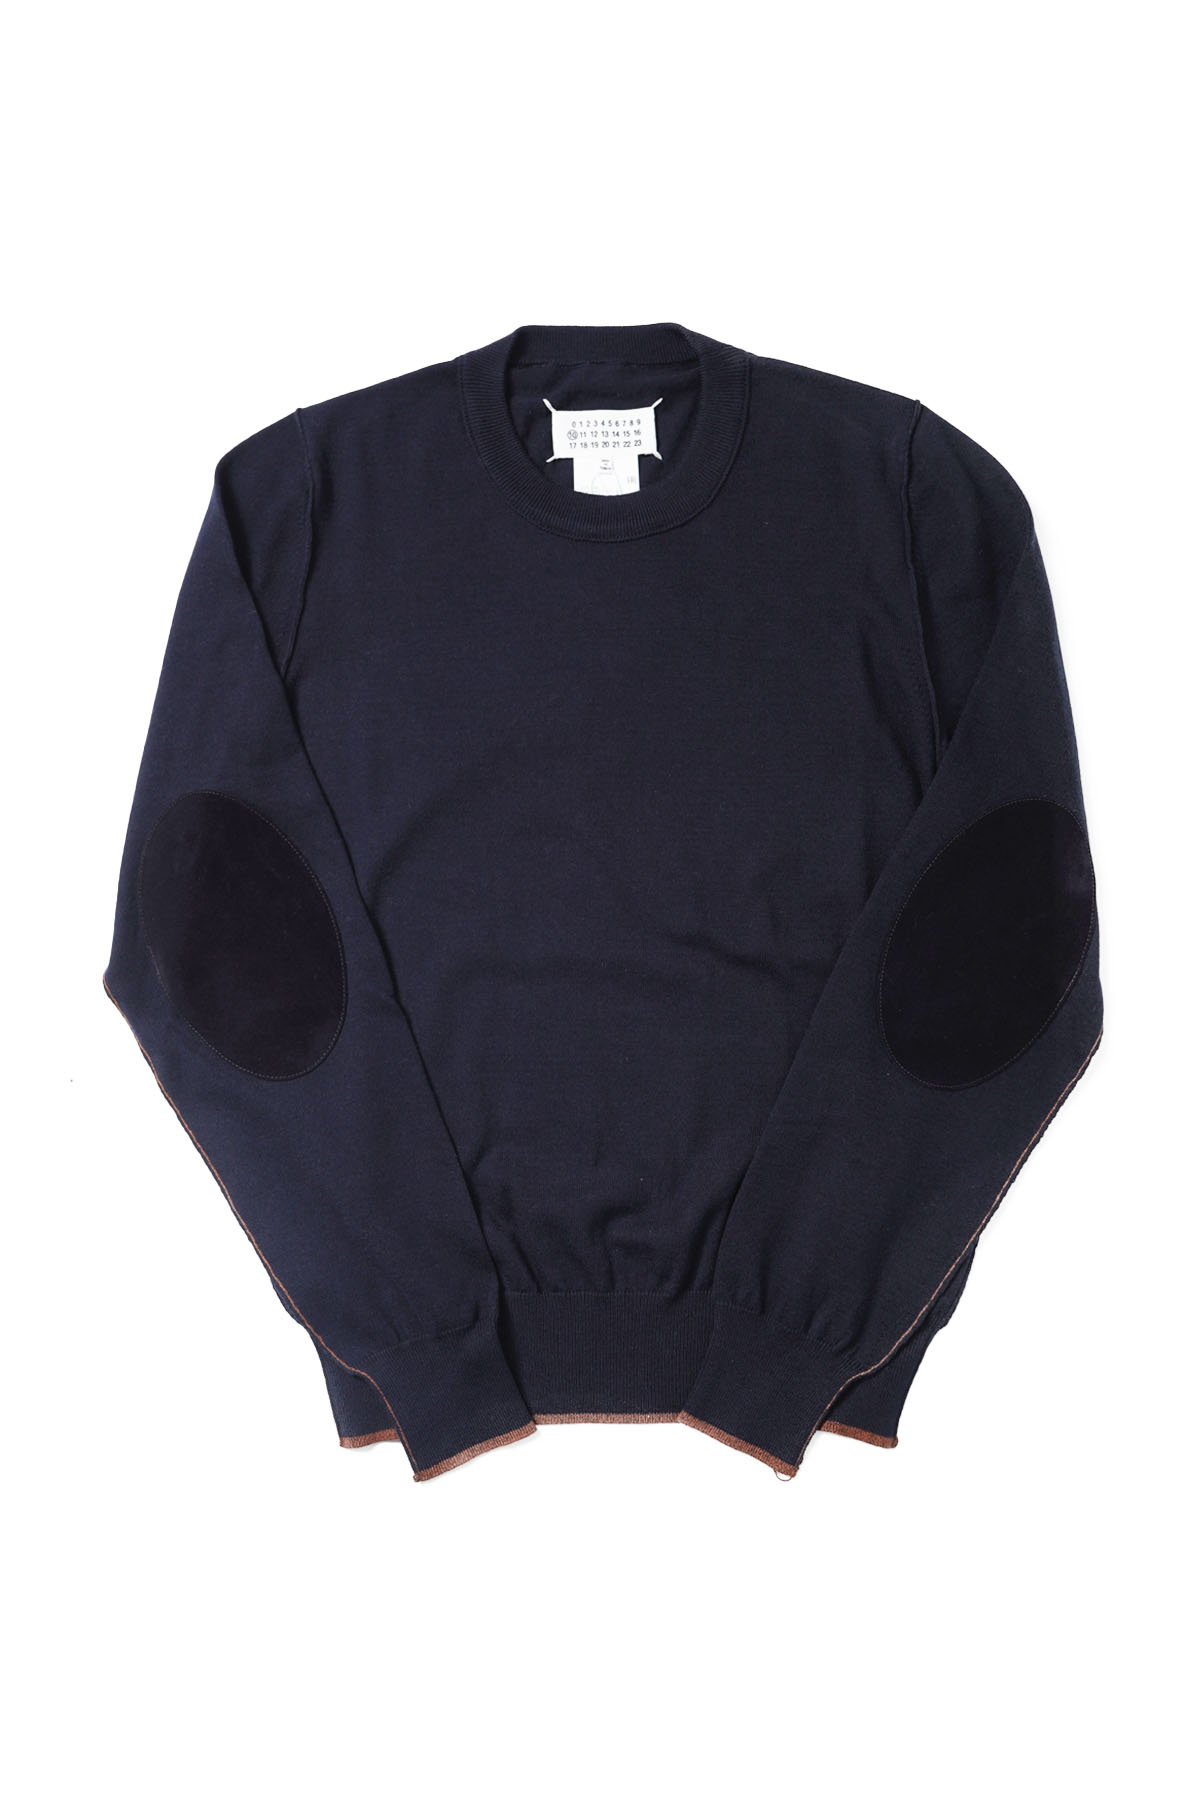 Elbow Patch Crew Neck Knit Navy[2021SS]